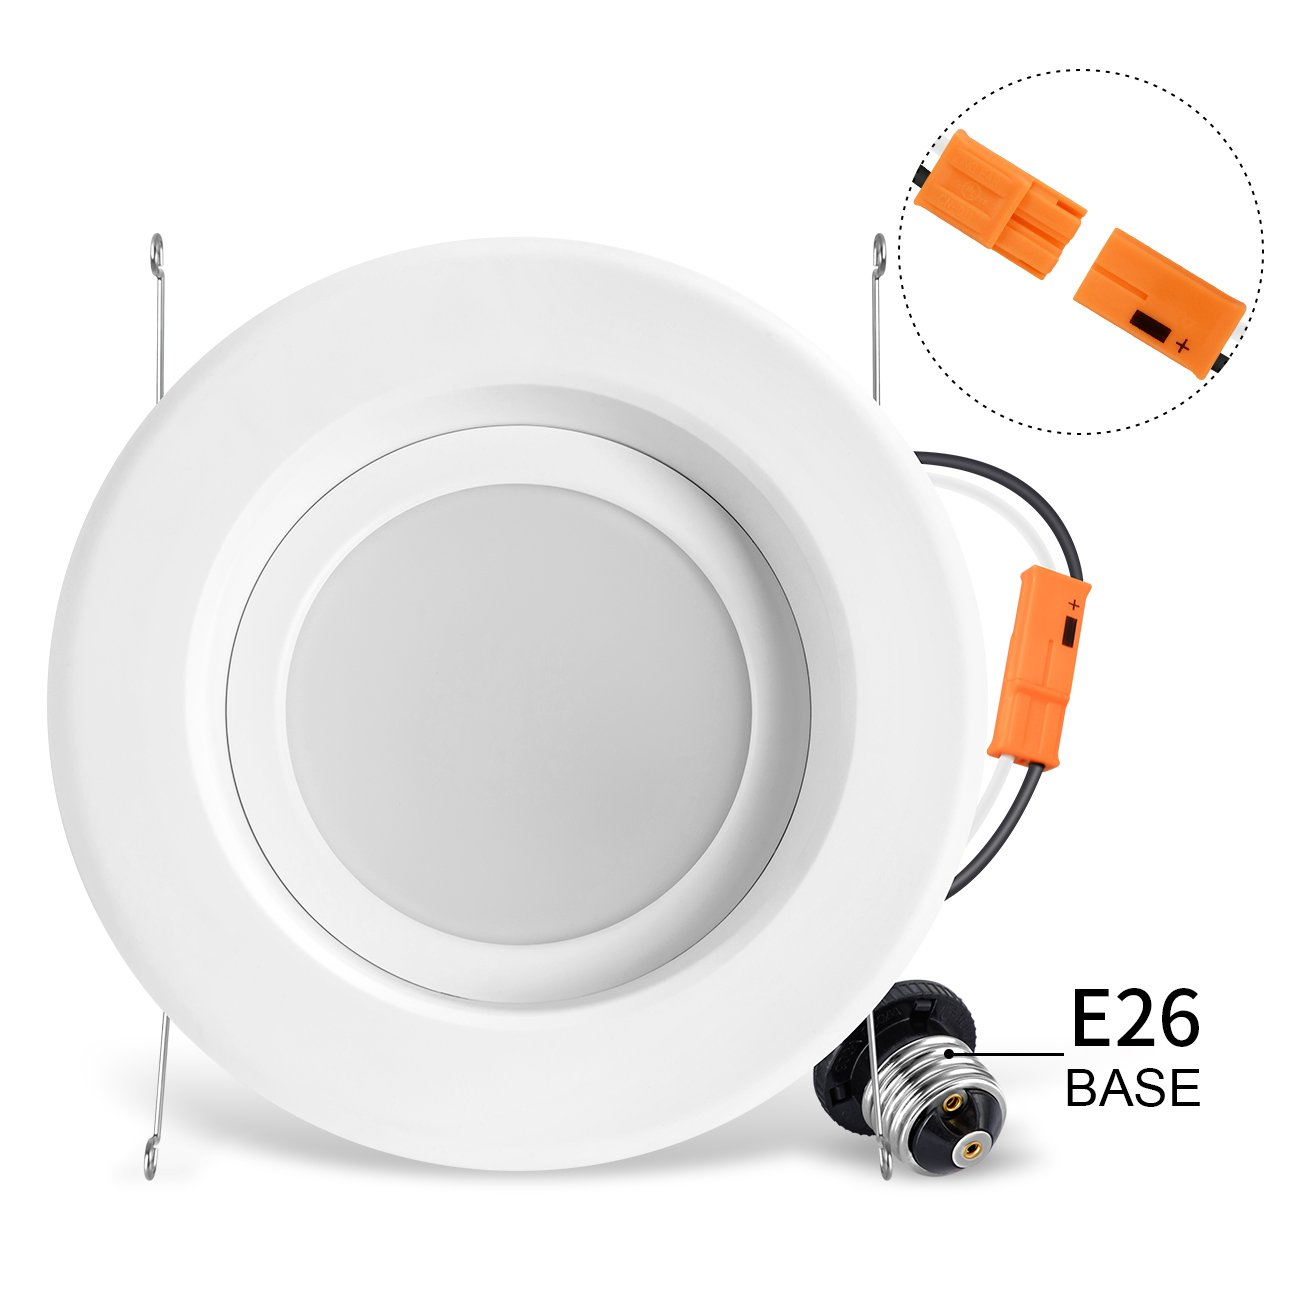 LVWIT LED 6'' Retrofit Dimmable Downlight 4000K Neutral White 1100 Lumens, 100W Equivalent 5 Year Warranty(4 Pack) by LVWIT (Image #5)